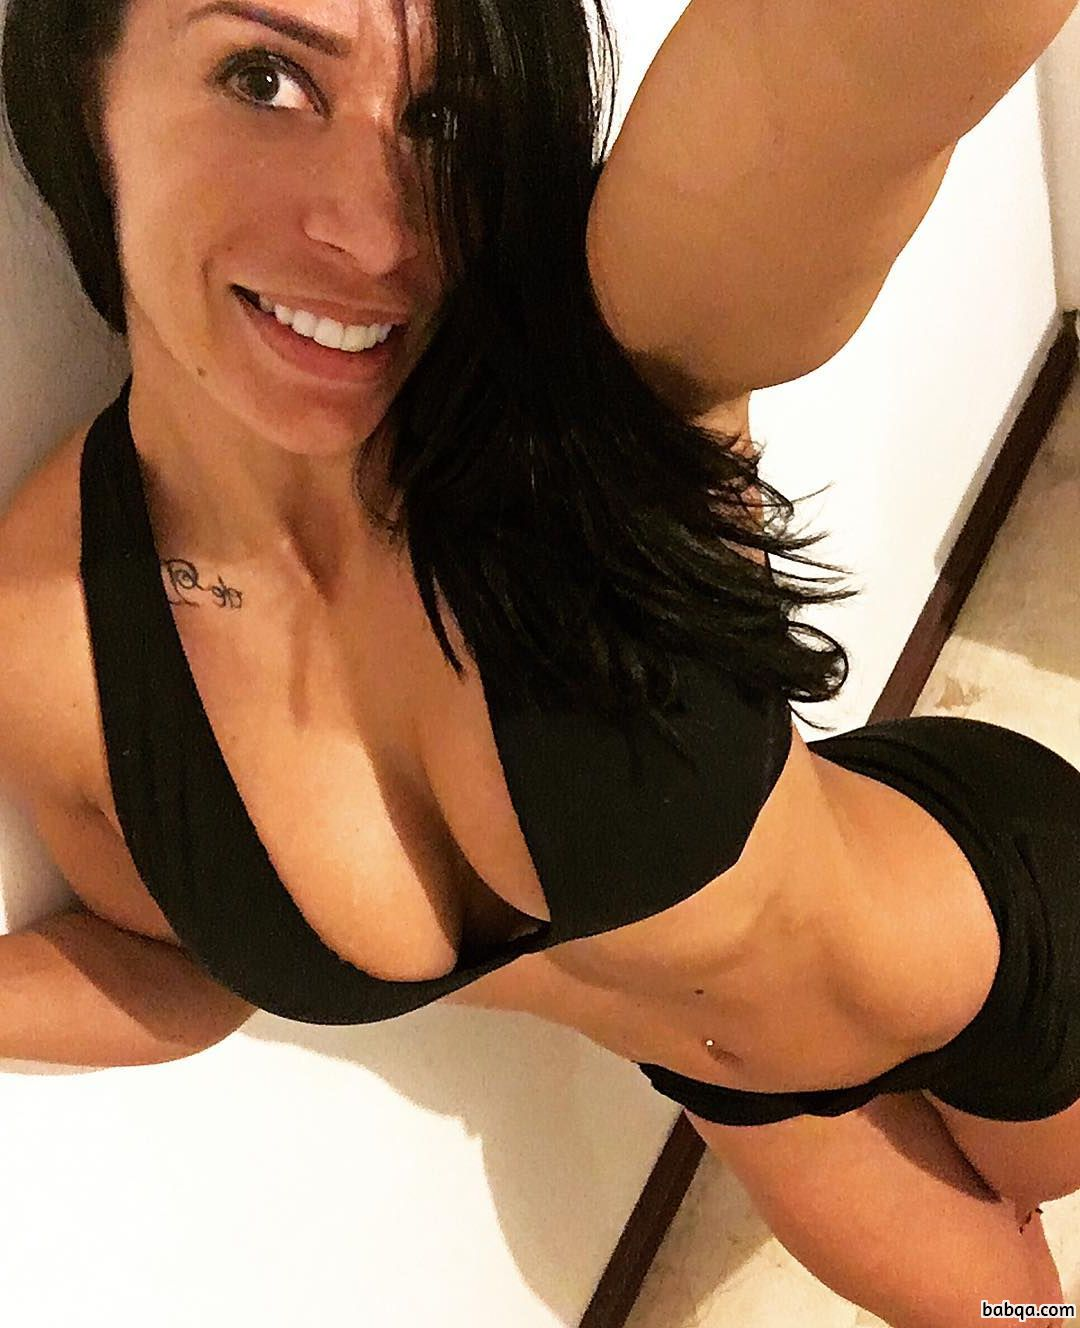 hottest lady with muscle body and muscle legs pic from reddit